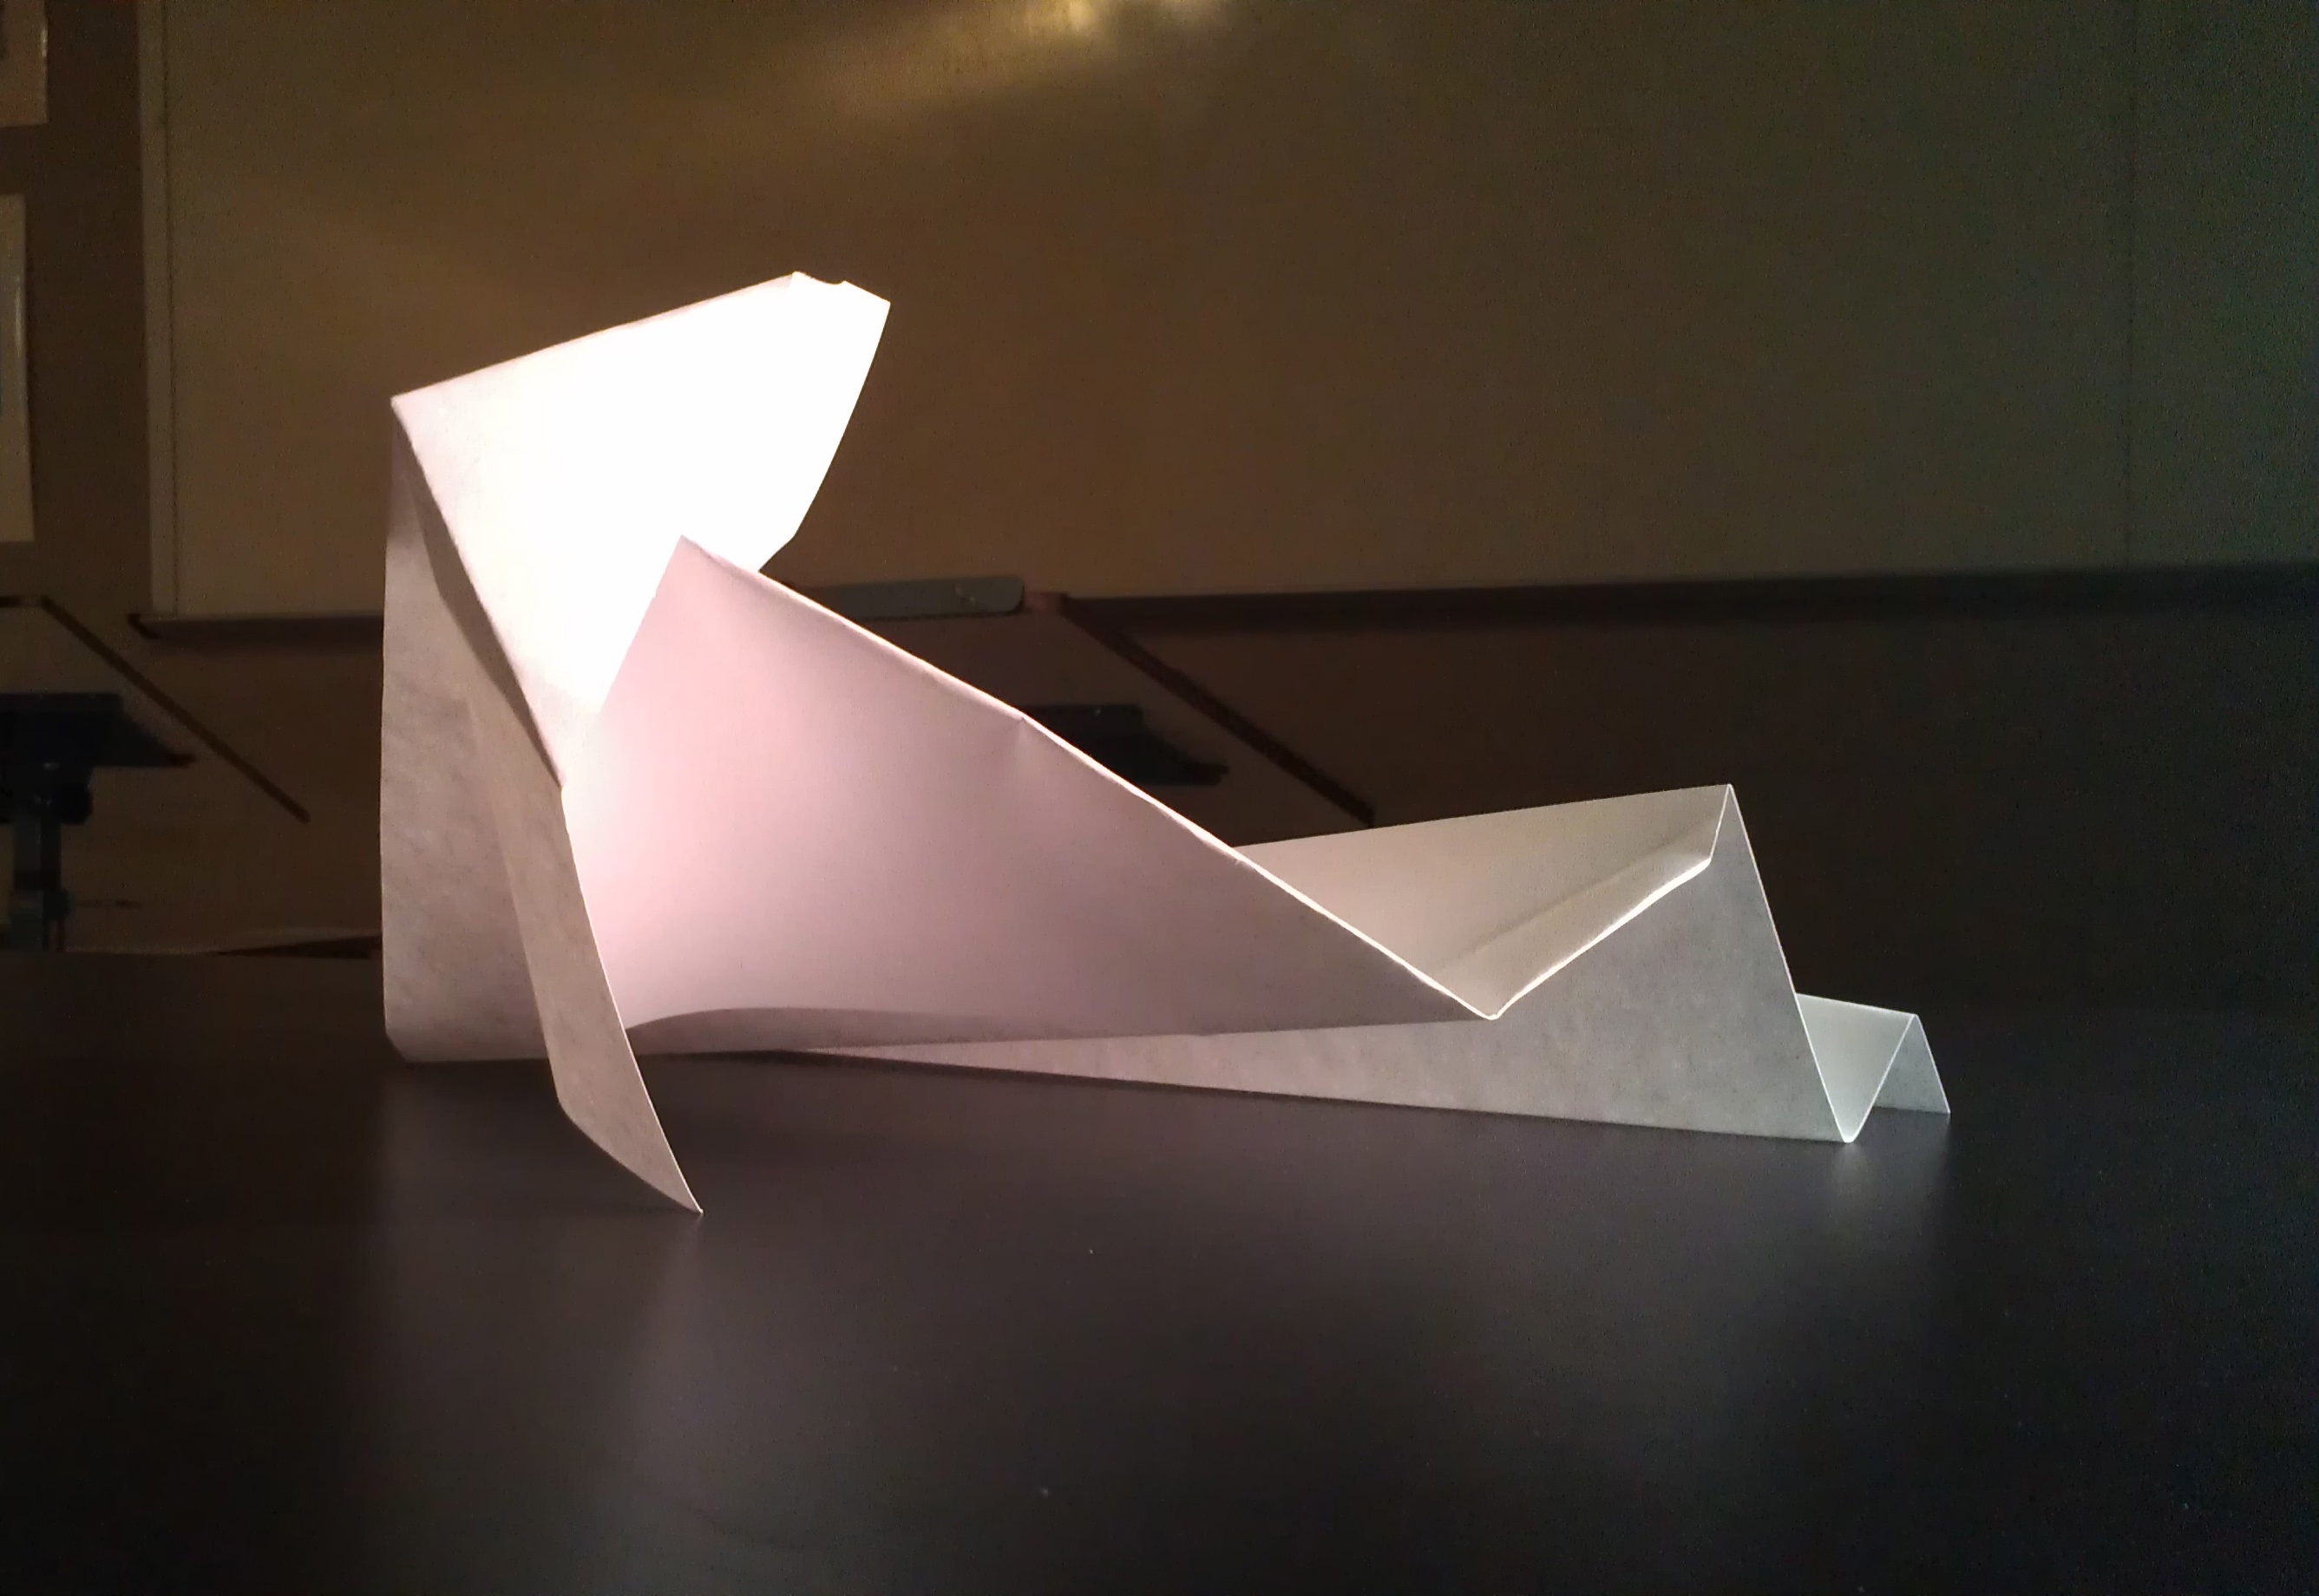 Folded Paper form for Observational Drawing